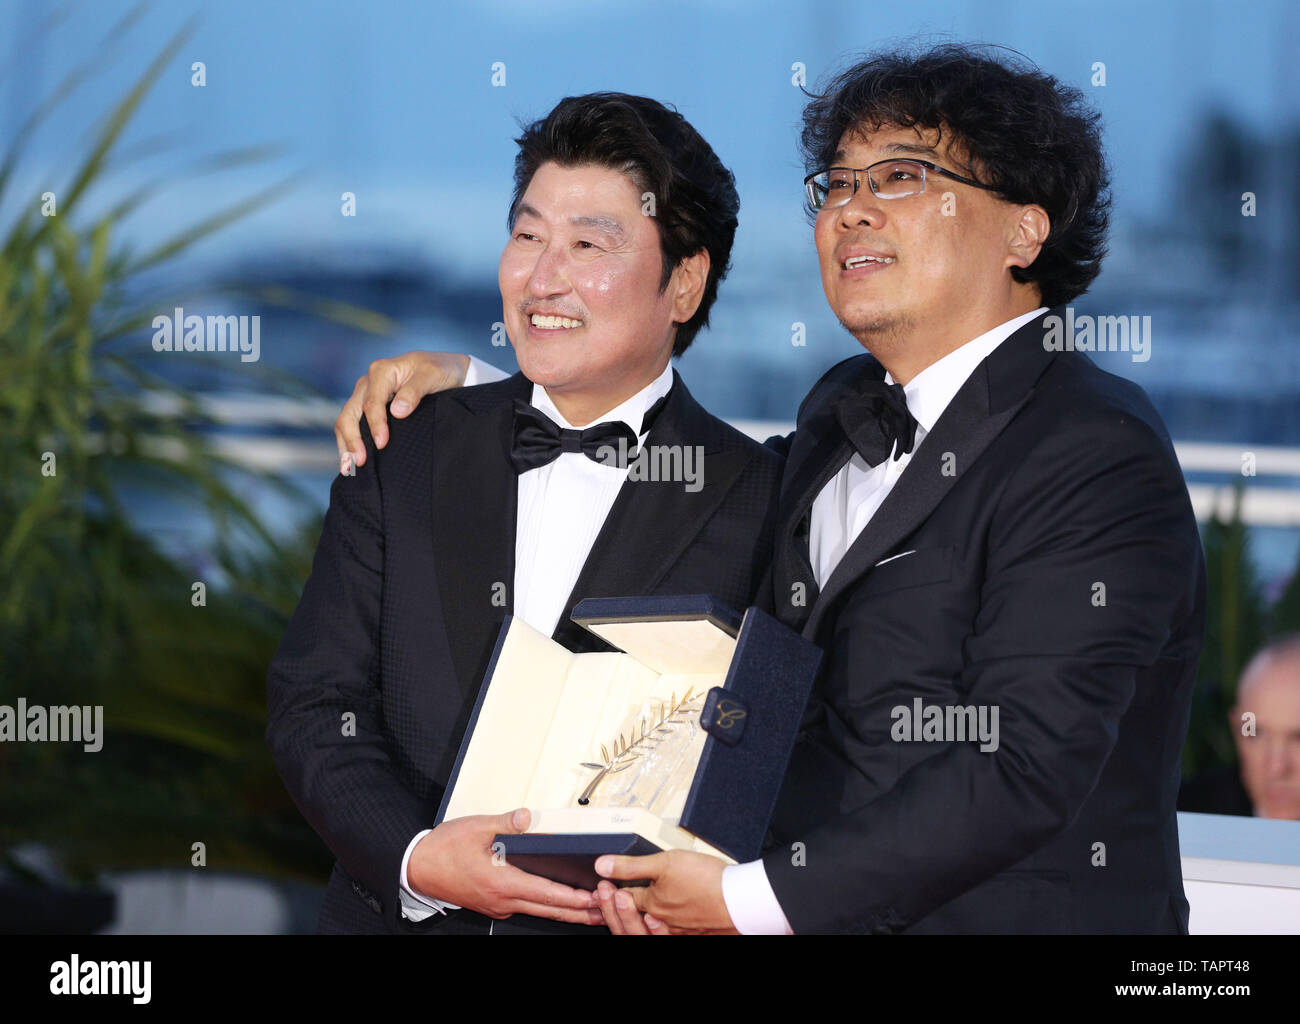 Cannes, France  25th May, 2019  South Korean director Bong